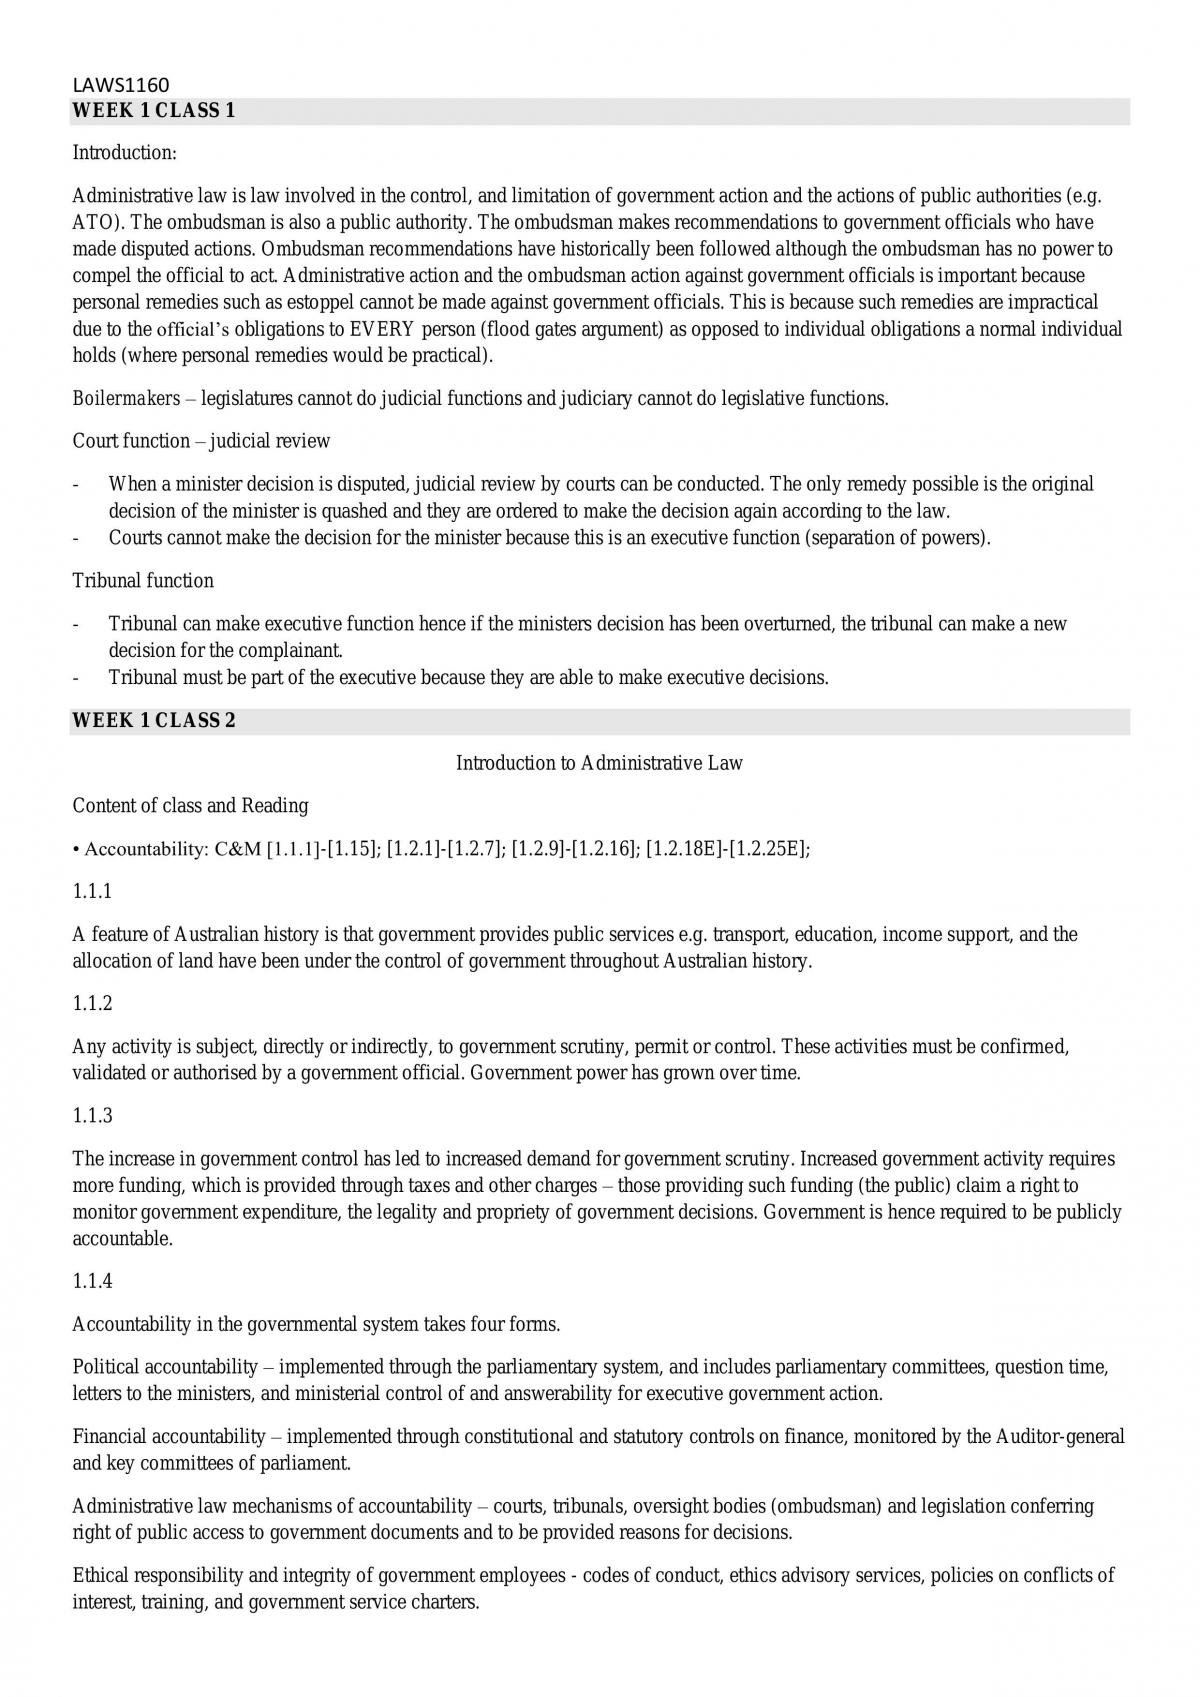 Full Admin Law Notes - Page 1